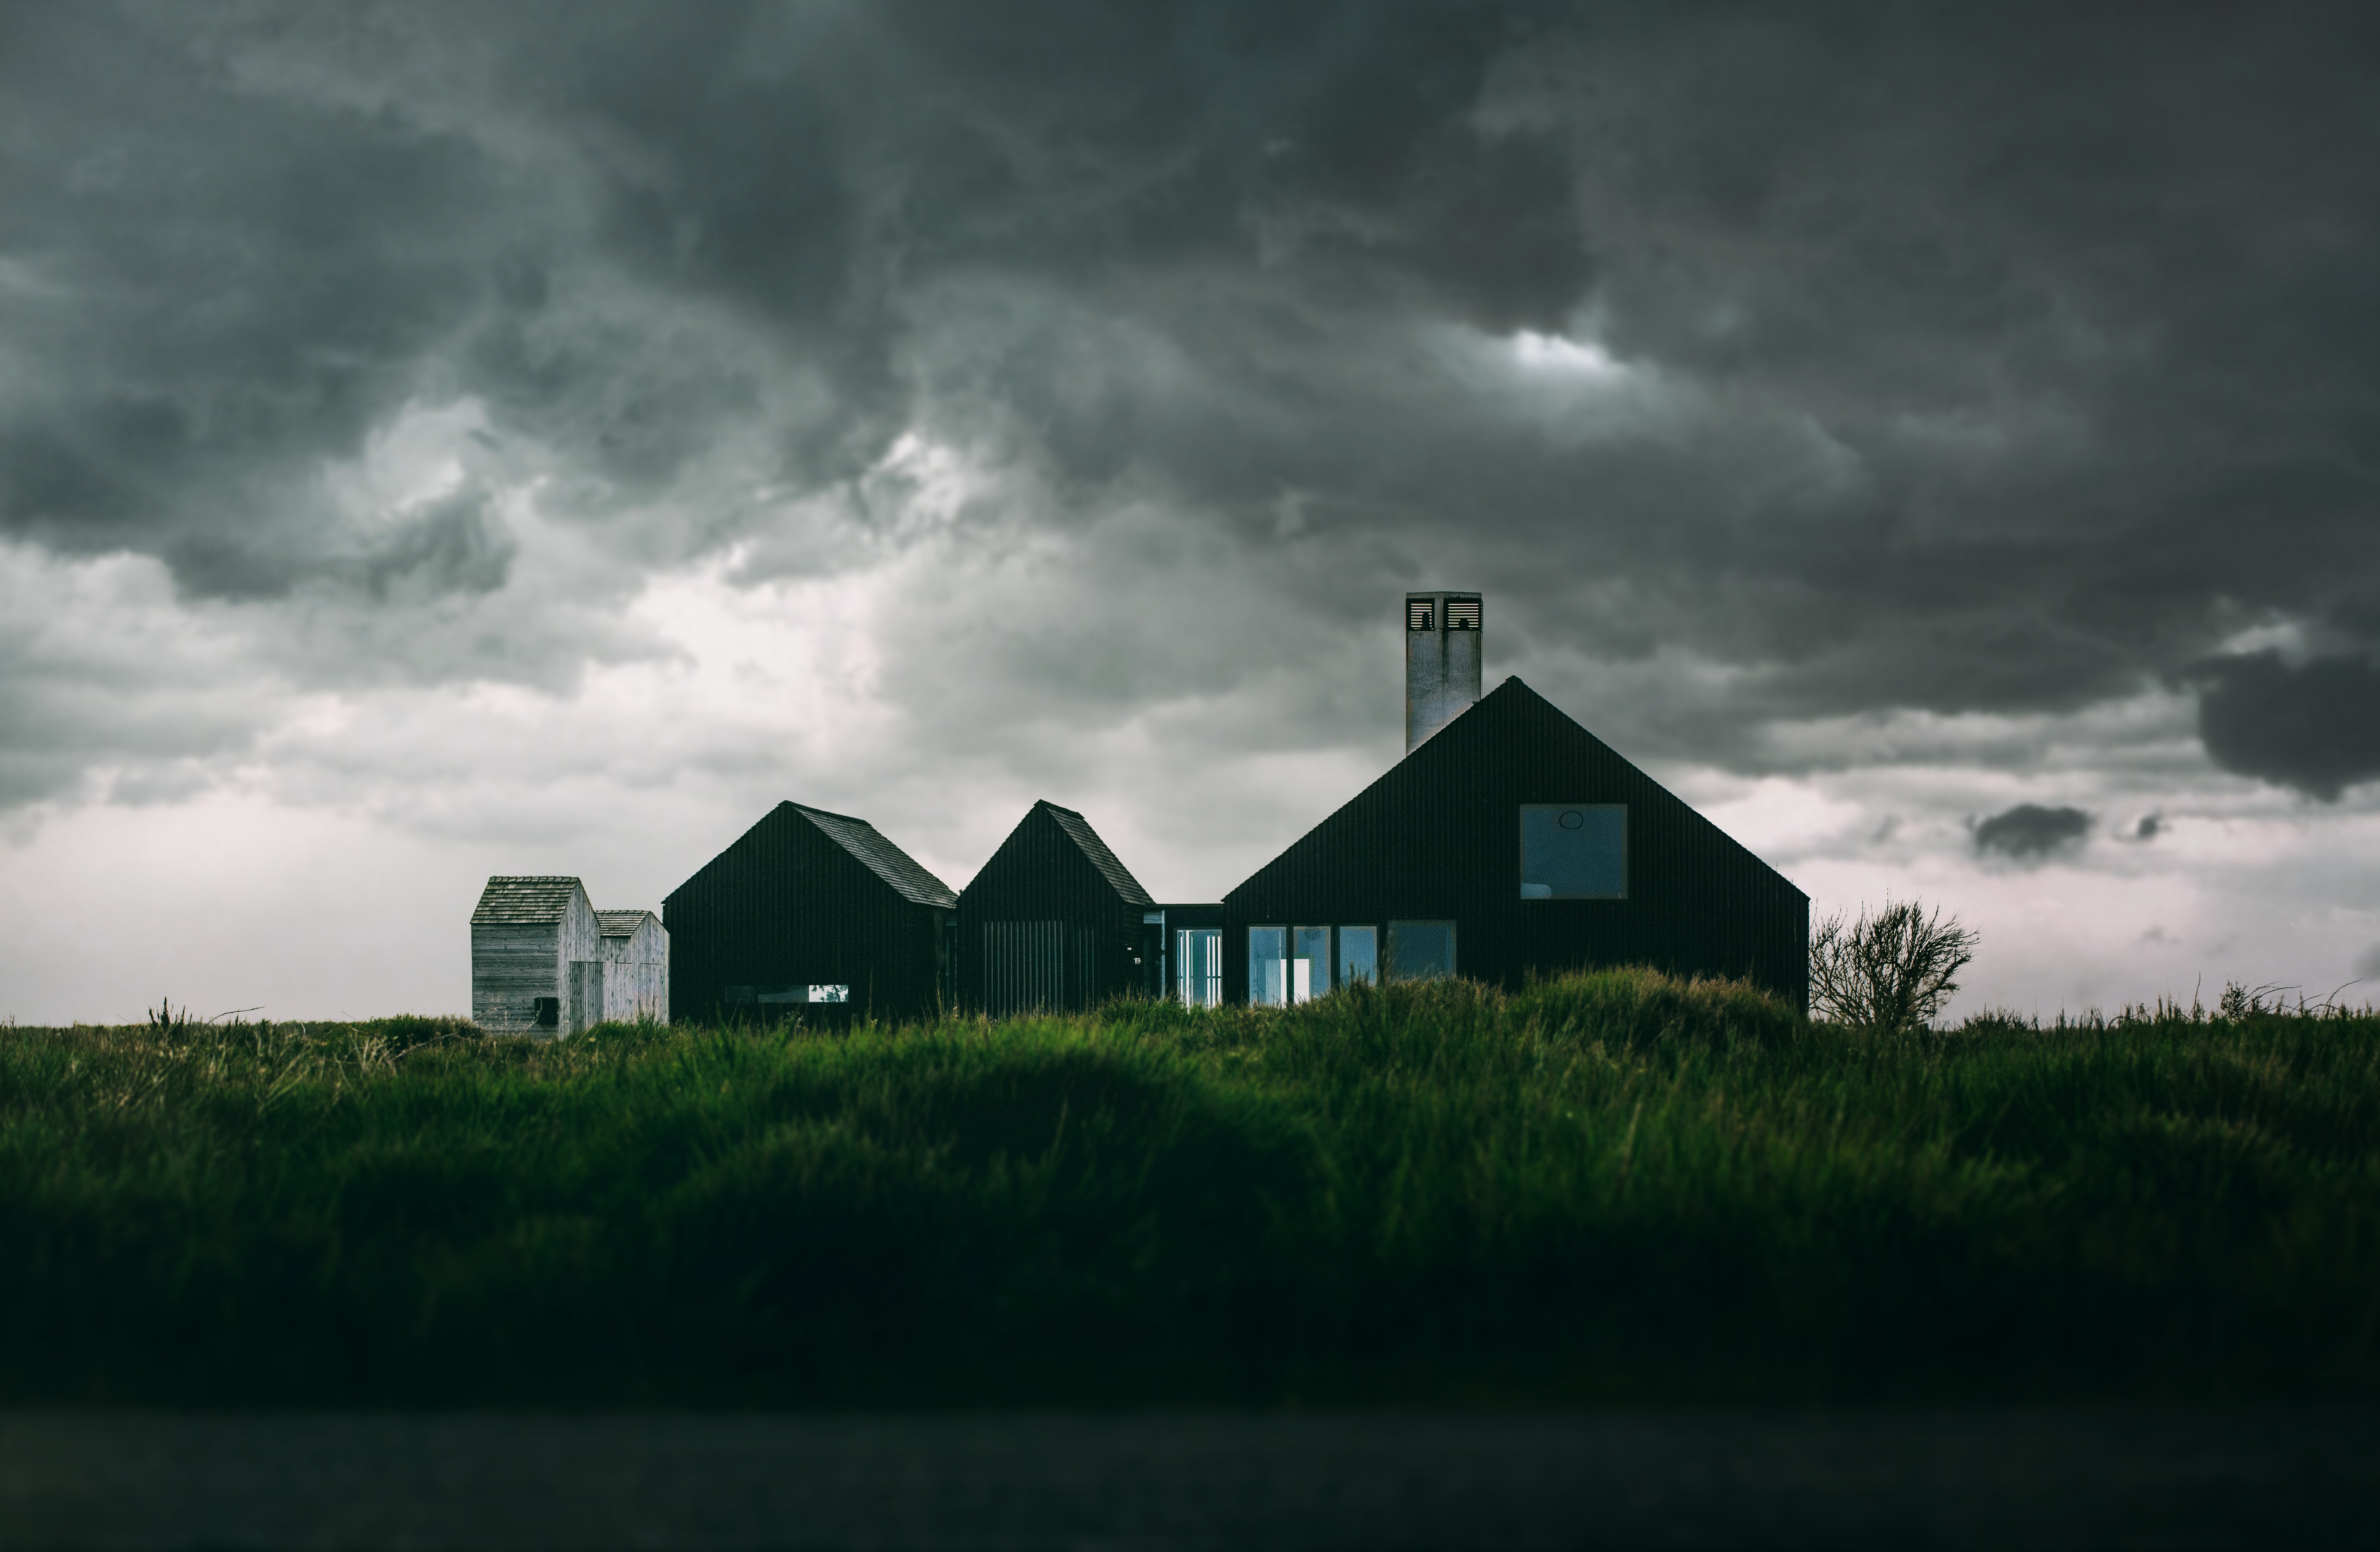 Single house in the middle of a green field with dark storm clouds gathering overhead